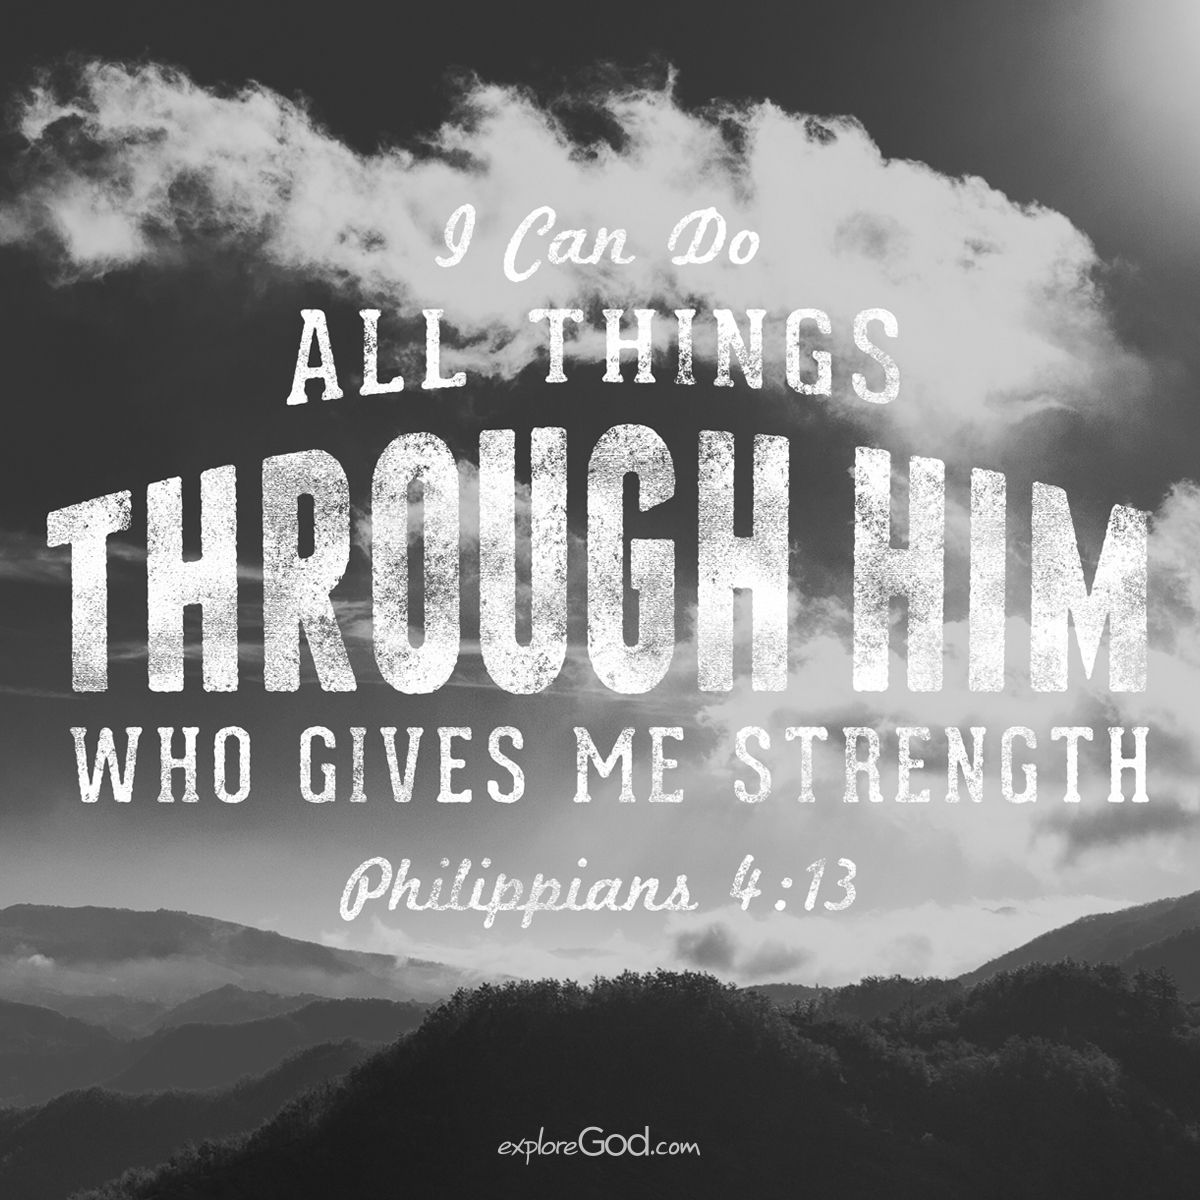 I Can Do All Things Through Him Who Gives Me Strength Philippians 413